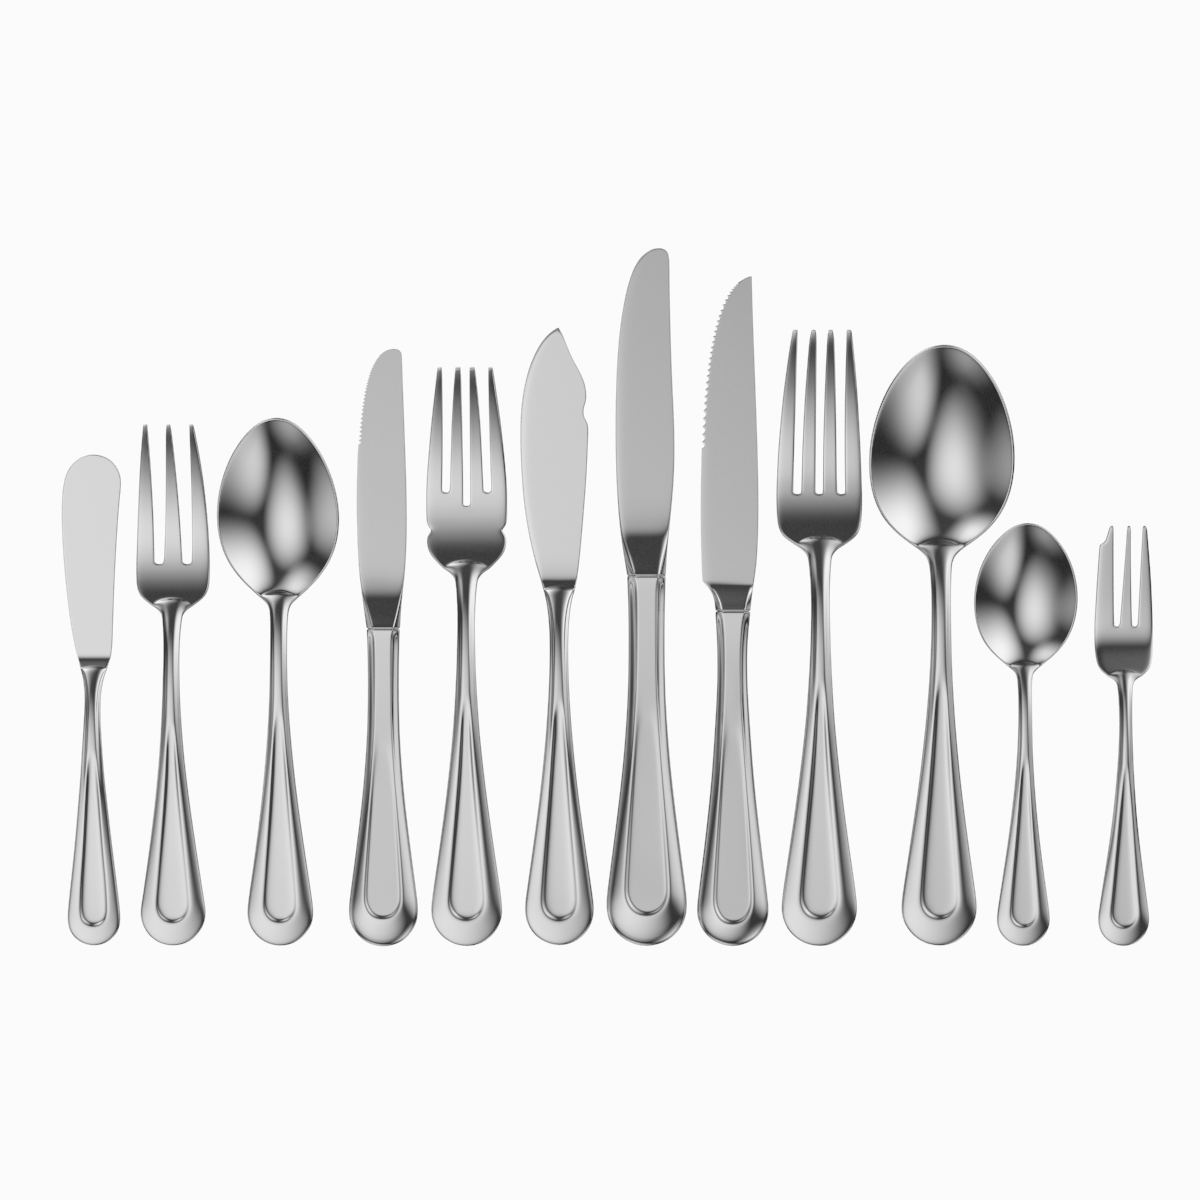 Classic Cutlery Set 12 Pieces Classic Cutlery Cutlery Set Fish Knife